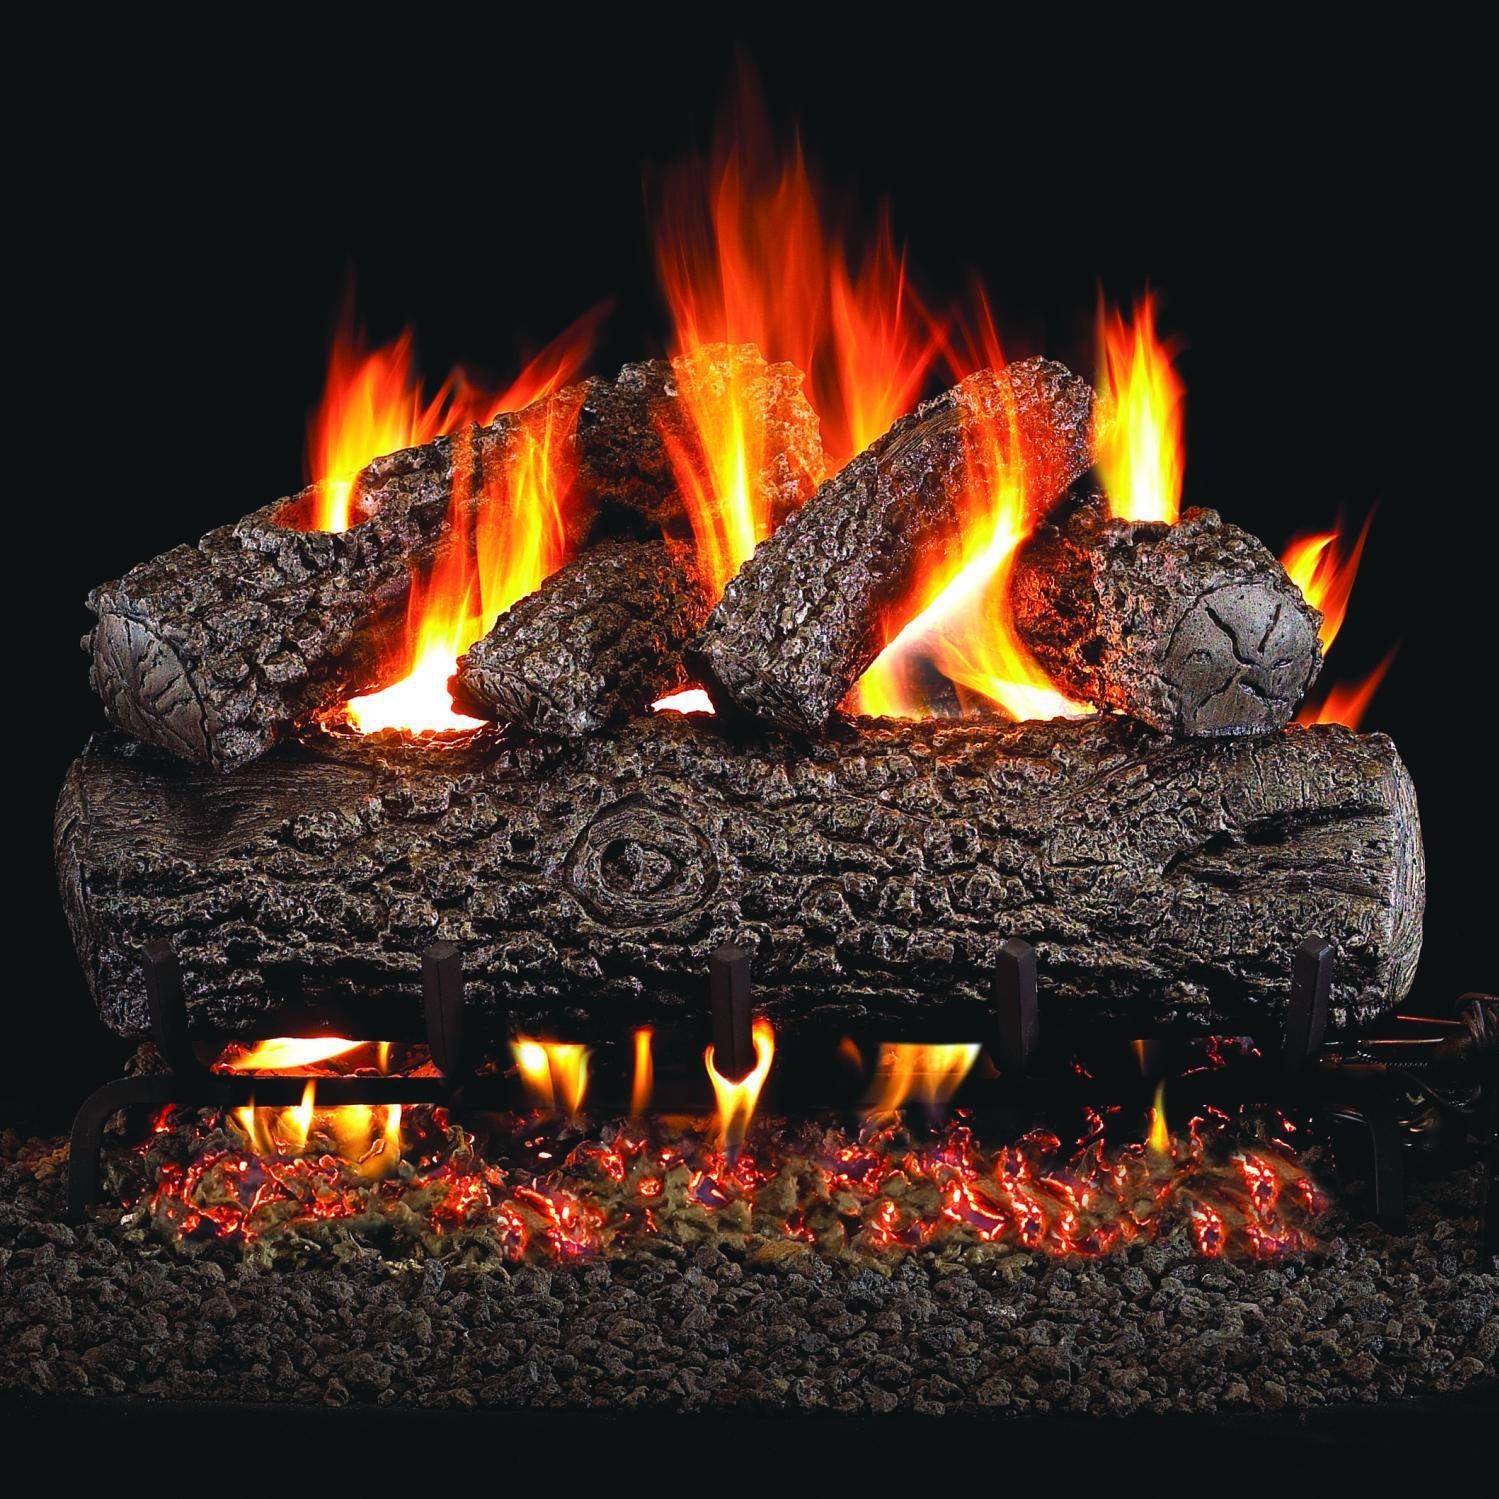 peterson real fyre 24 inch post oak log set with vented natural gas g4 burner match light rh amazon com  peterson ventless fireplace logs